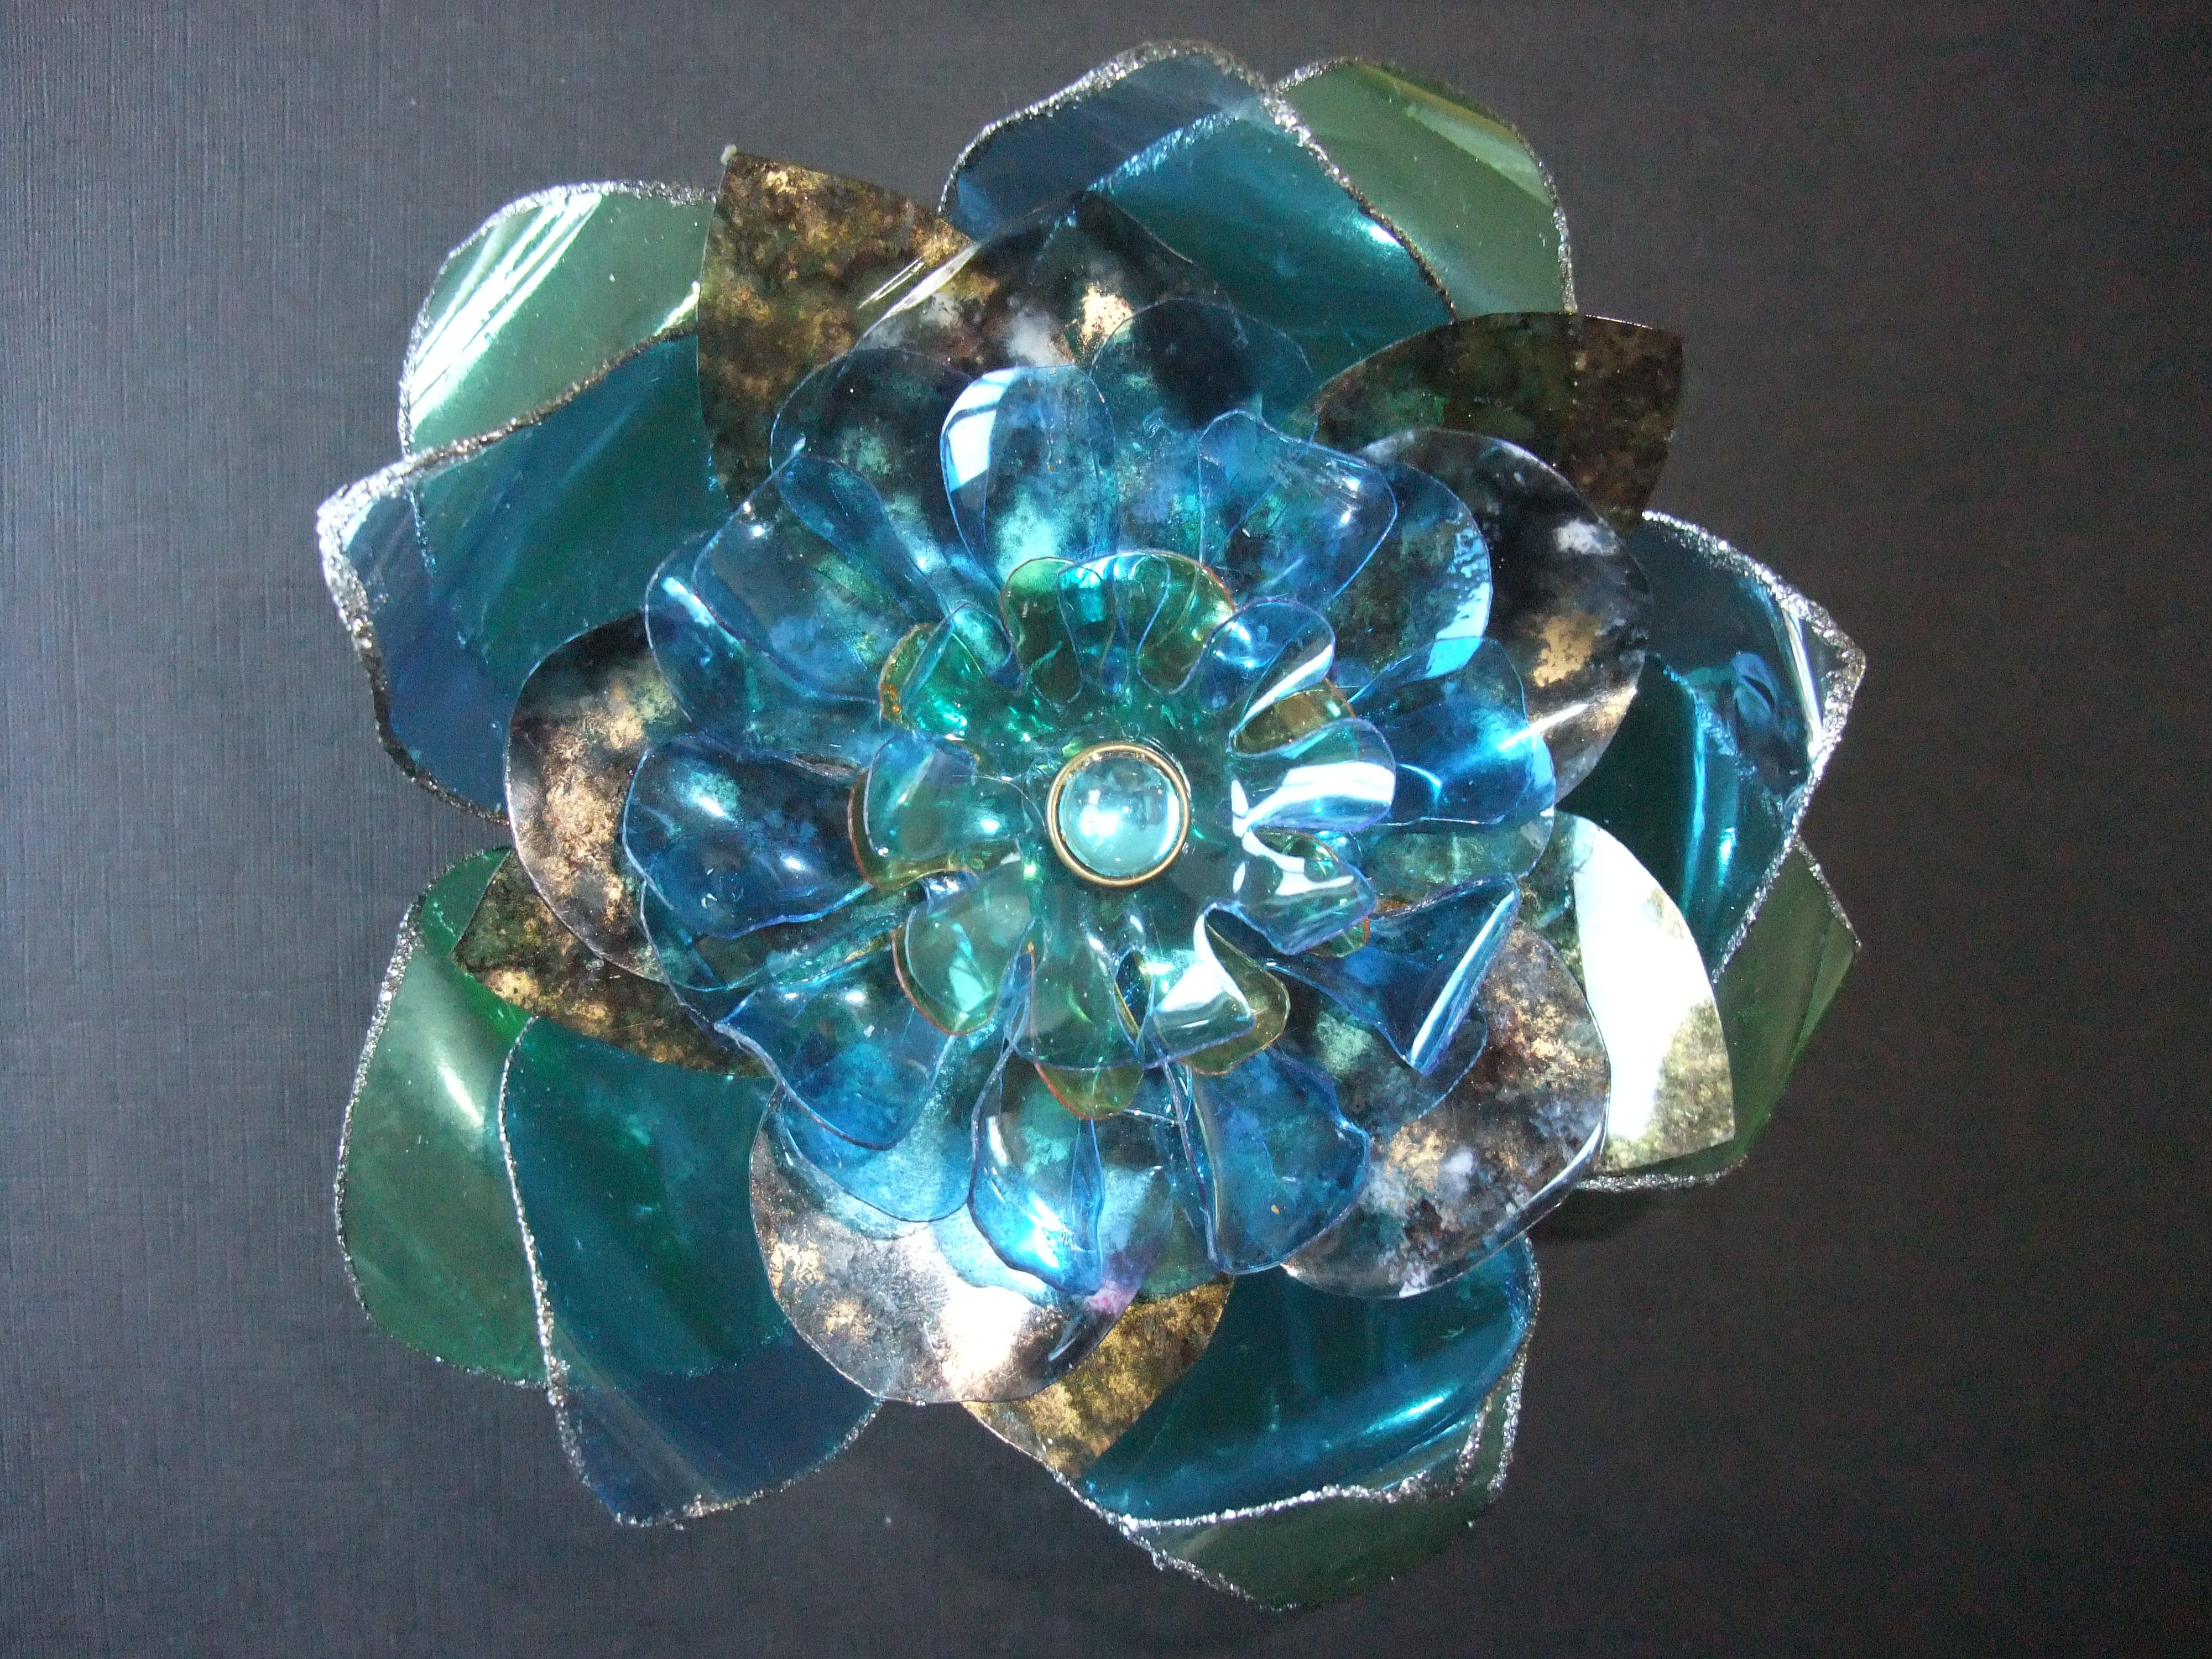 Faux glass window flower made from recycled plastic bottles